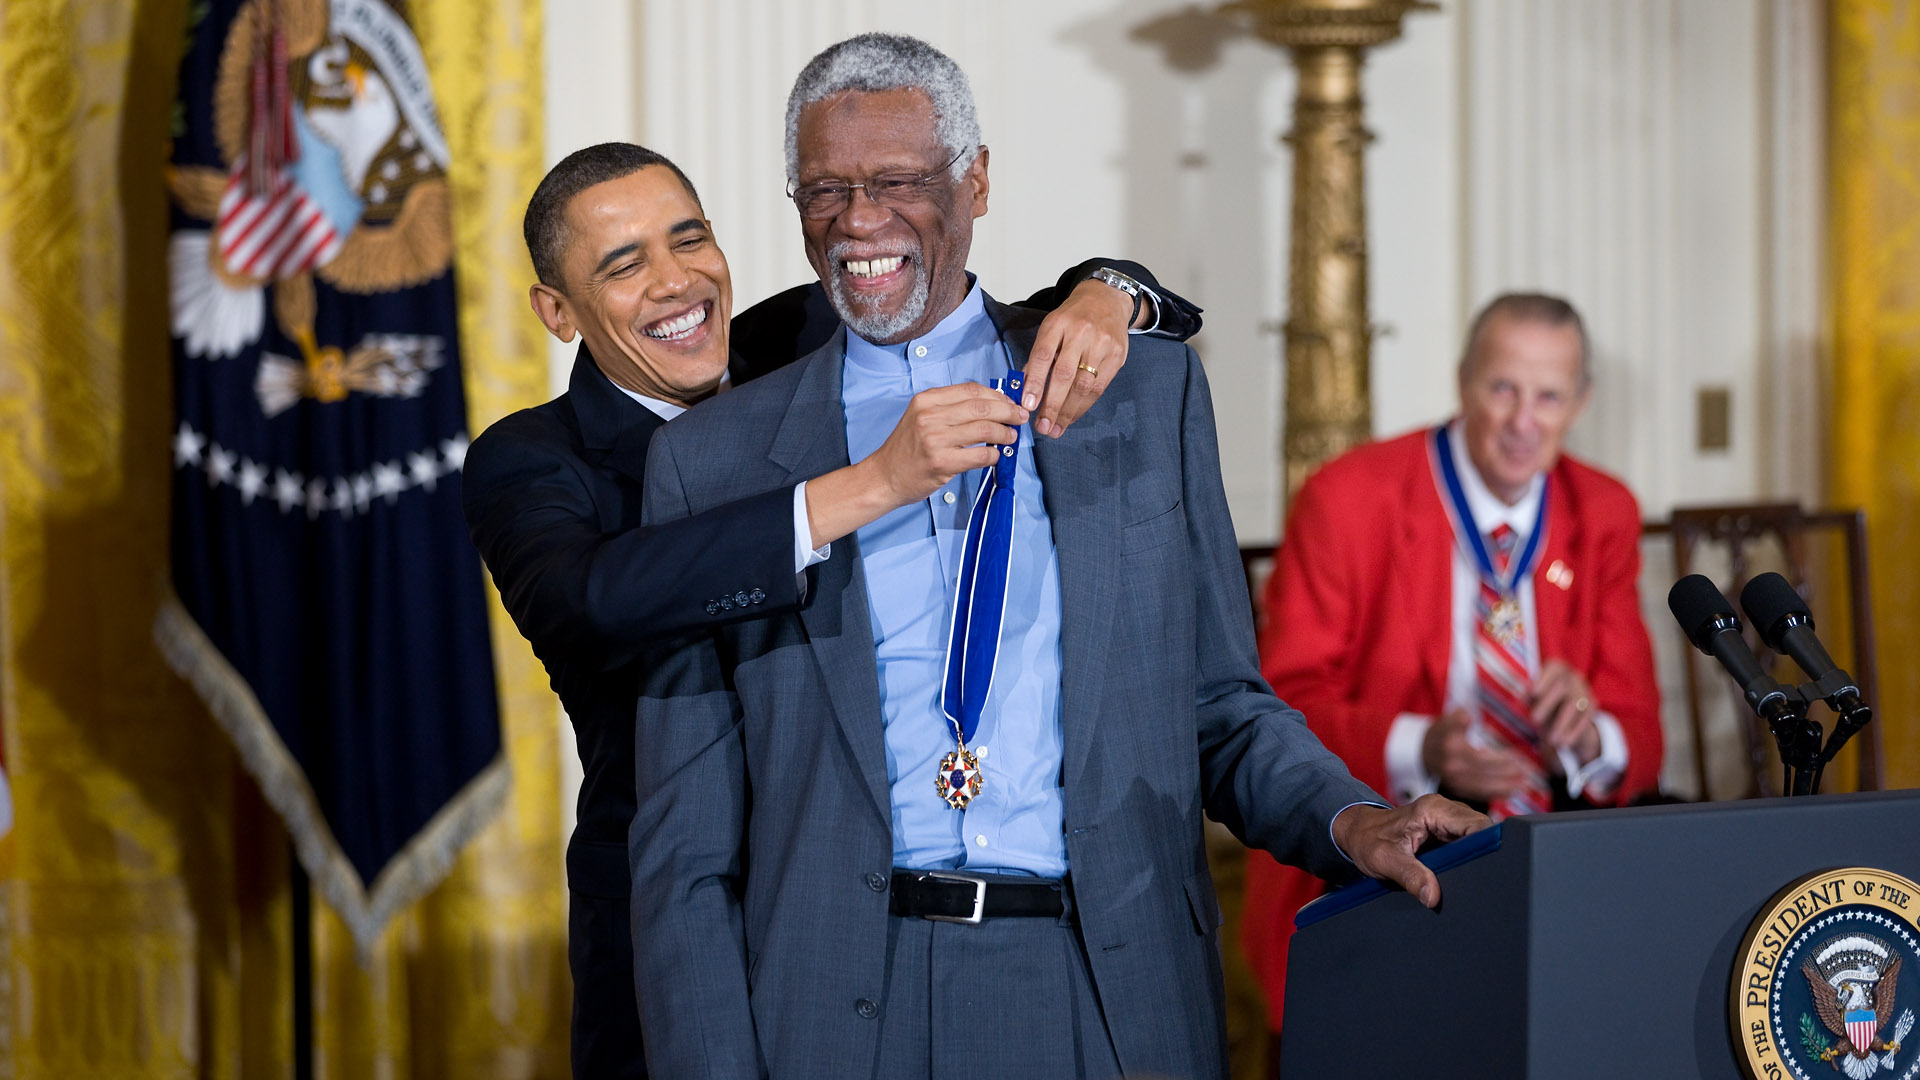 President Barack Obama awards the 2010 Presidential Medal of Freedom to Bill Russell